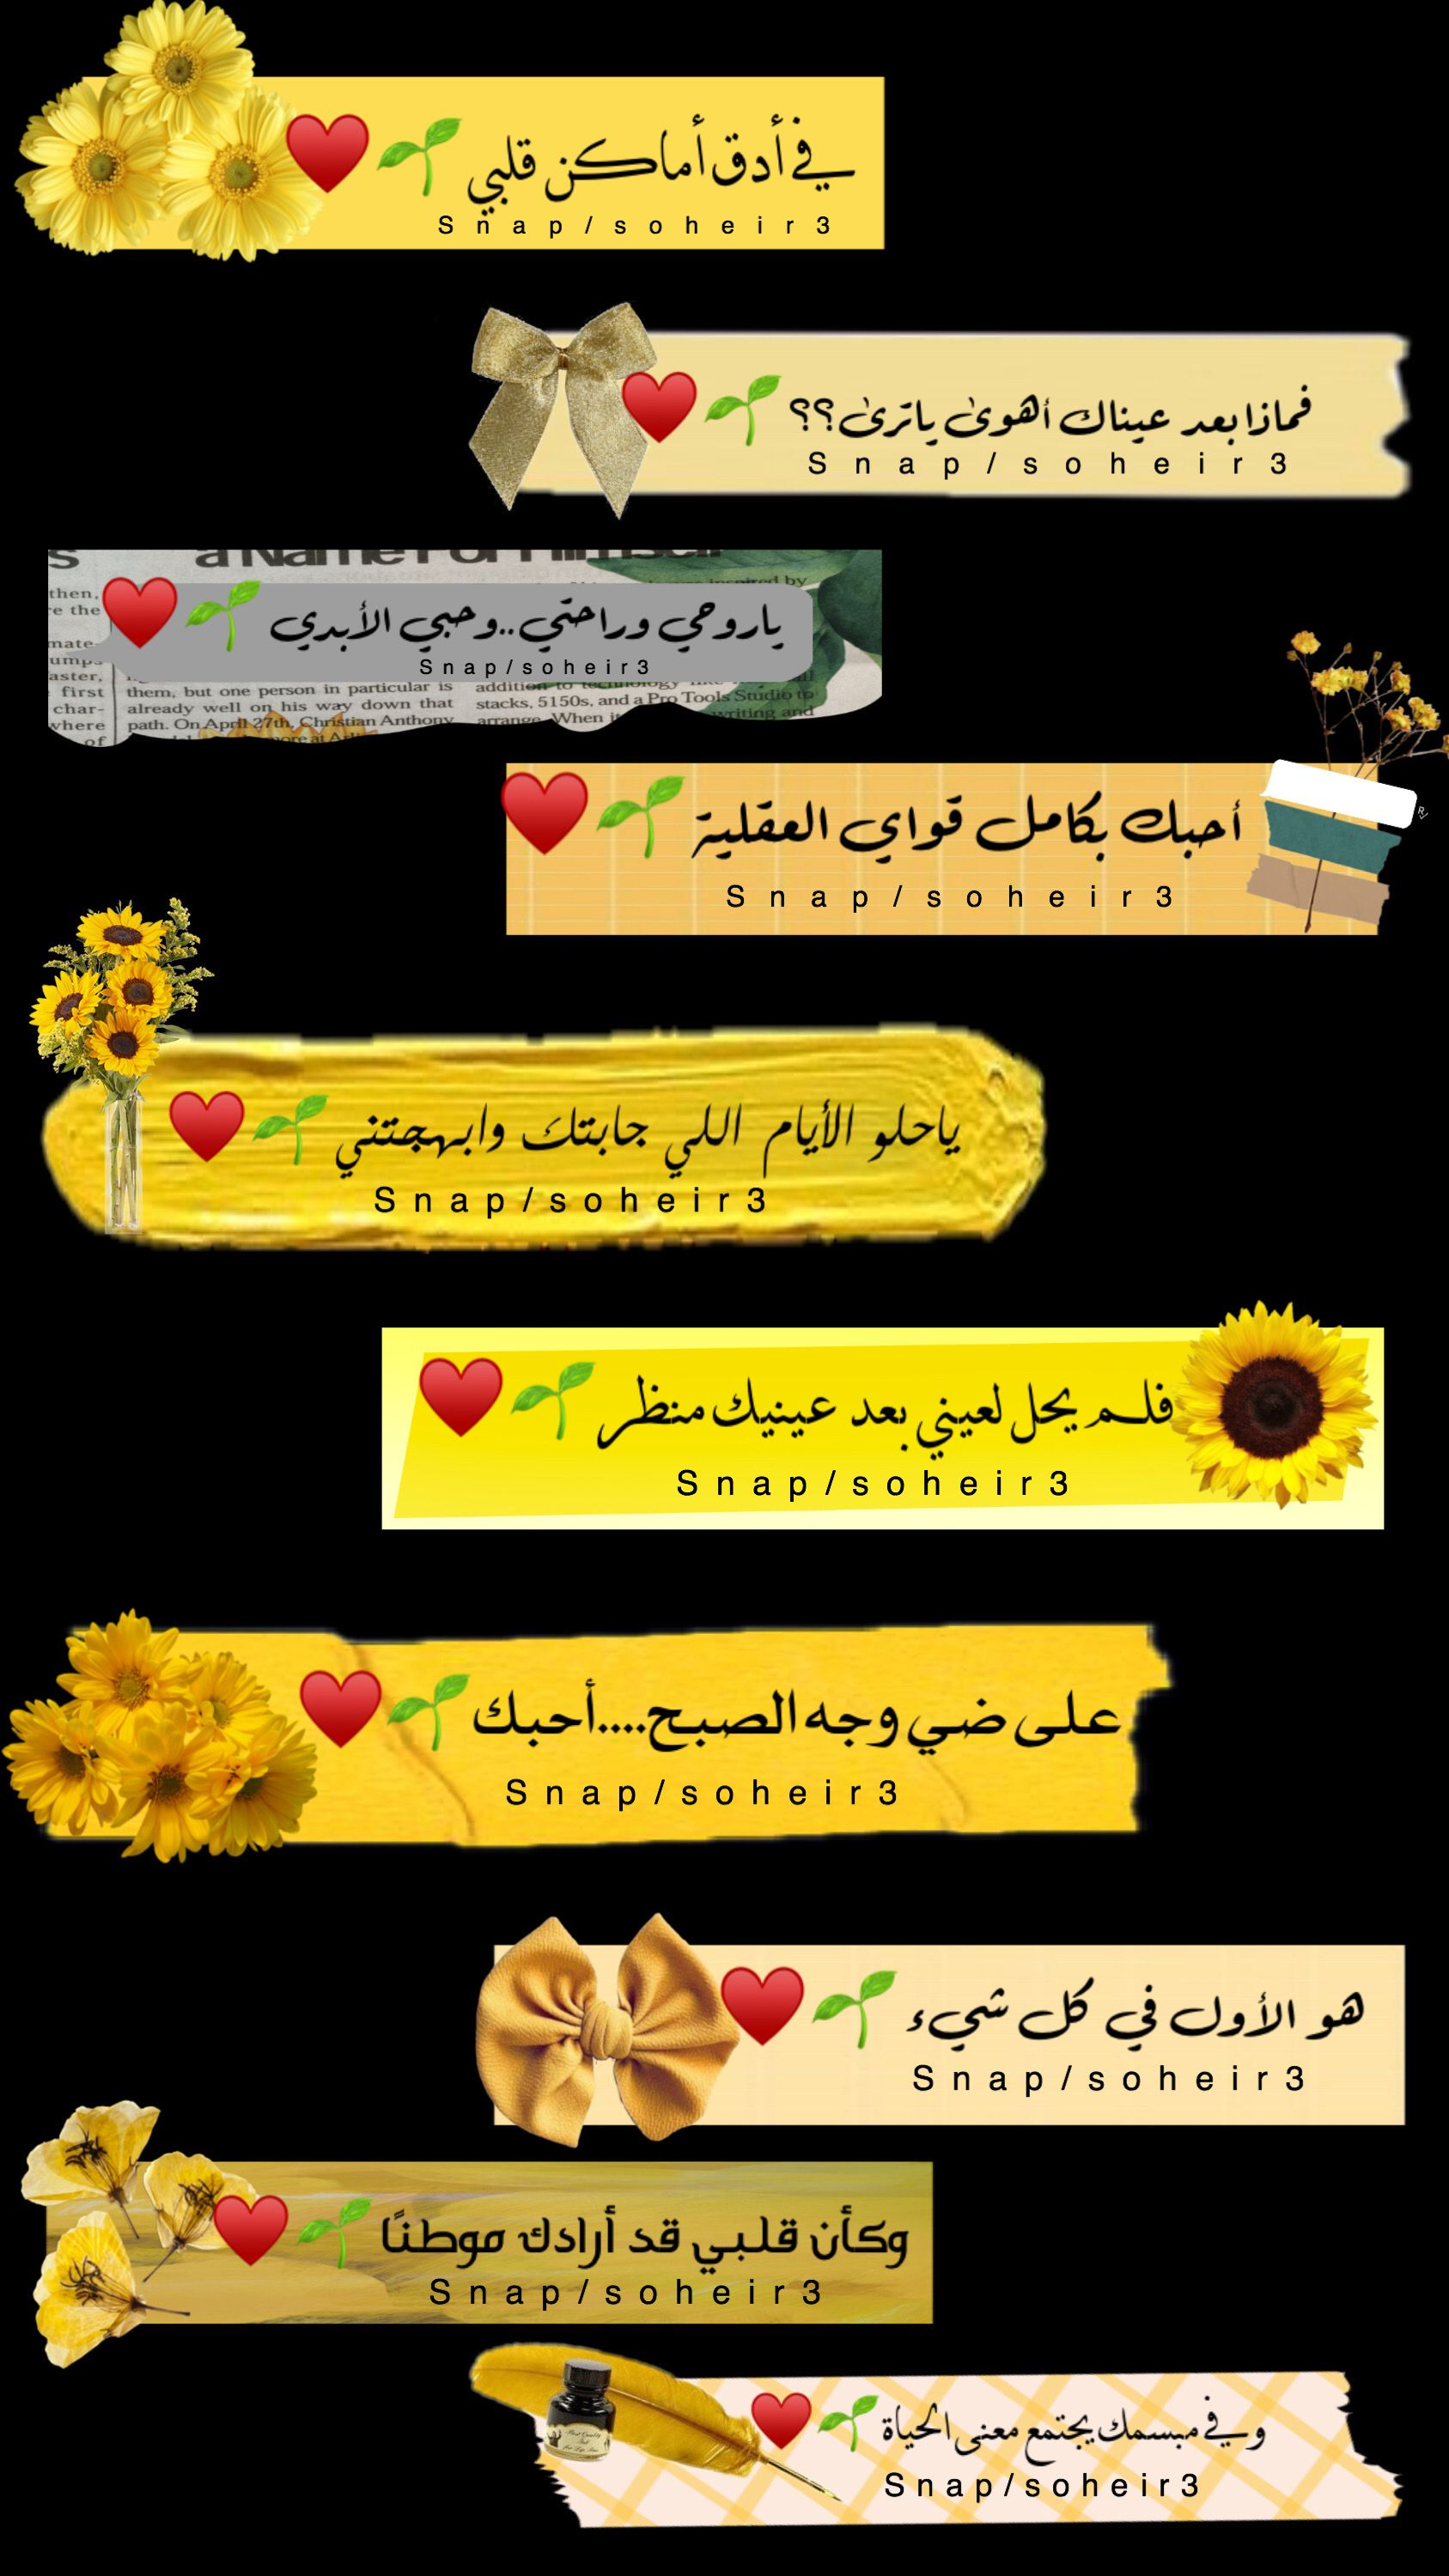 عبارات ورق قصاصات Paper Textpaper Papertext Art Cover Photo Quotes Iphone Wallpaper Quotes Love Quran Quotes Love